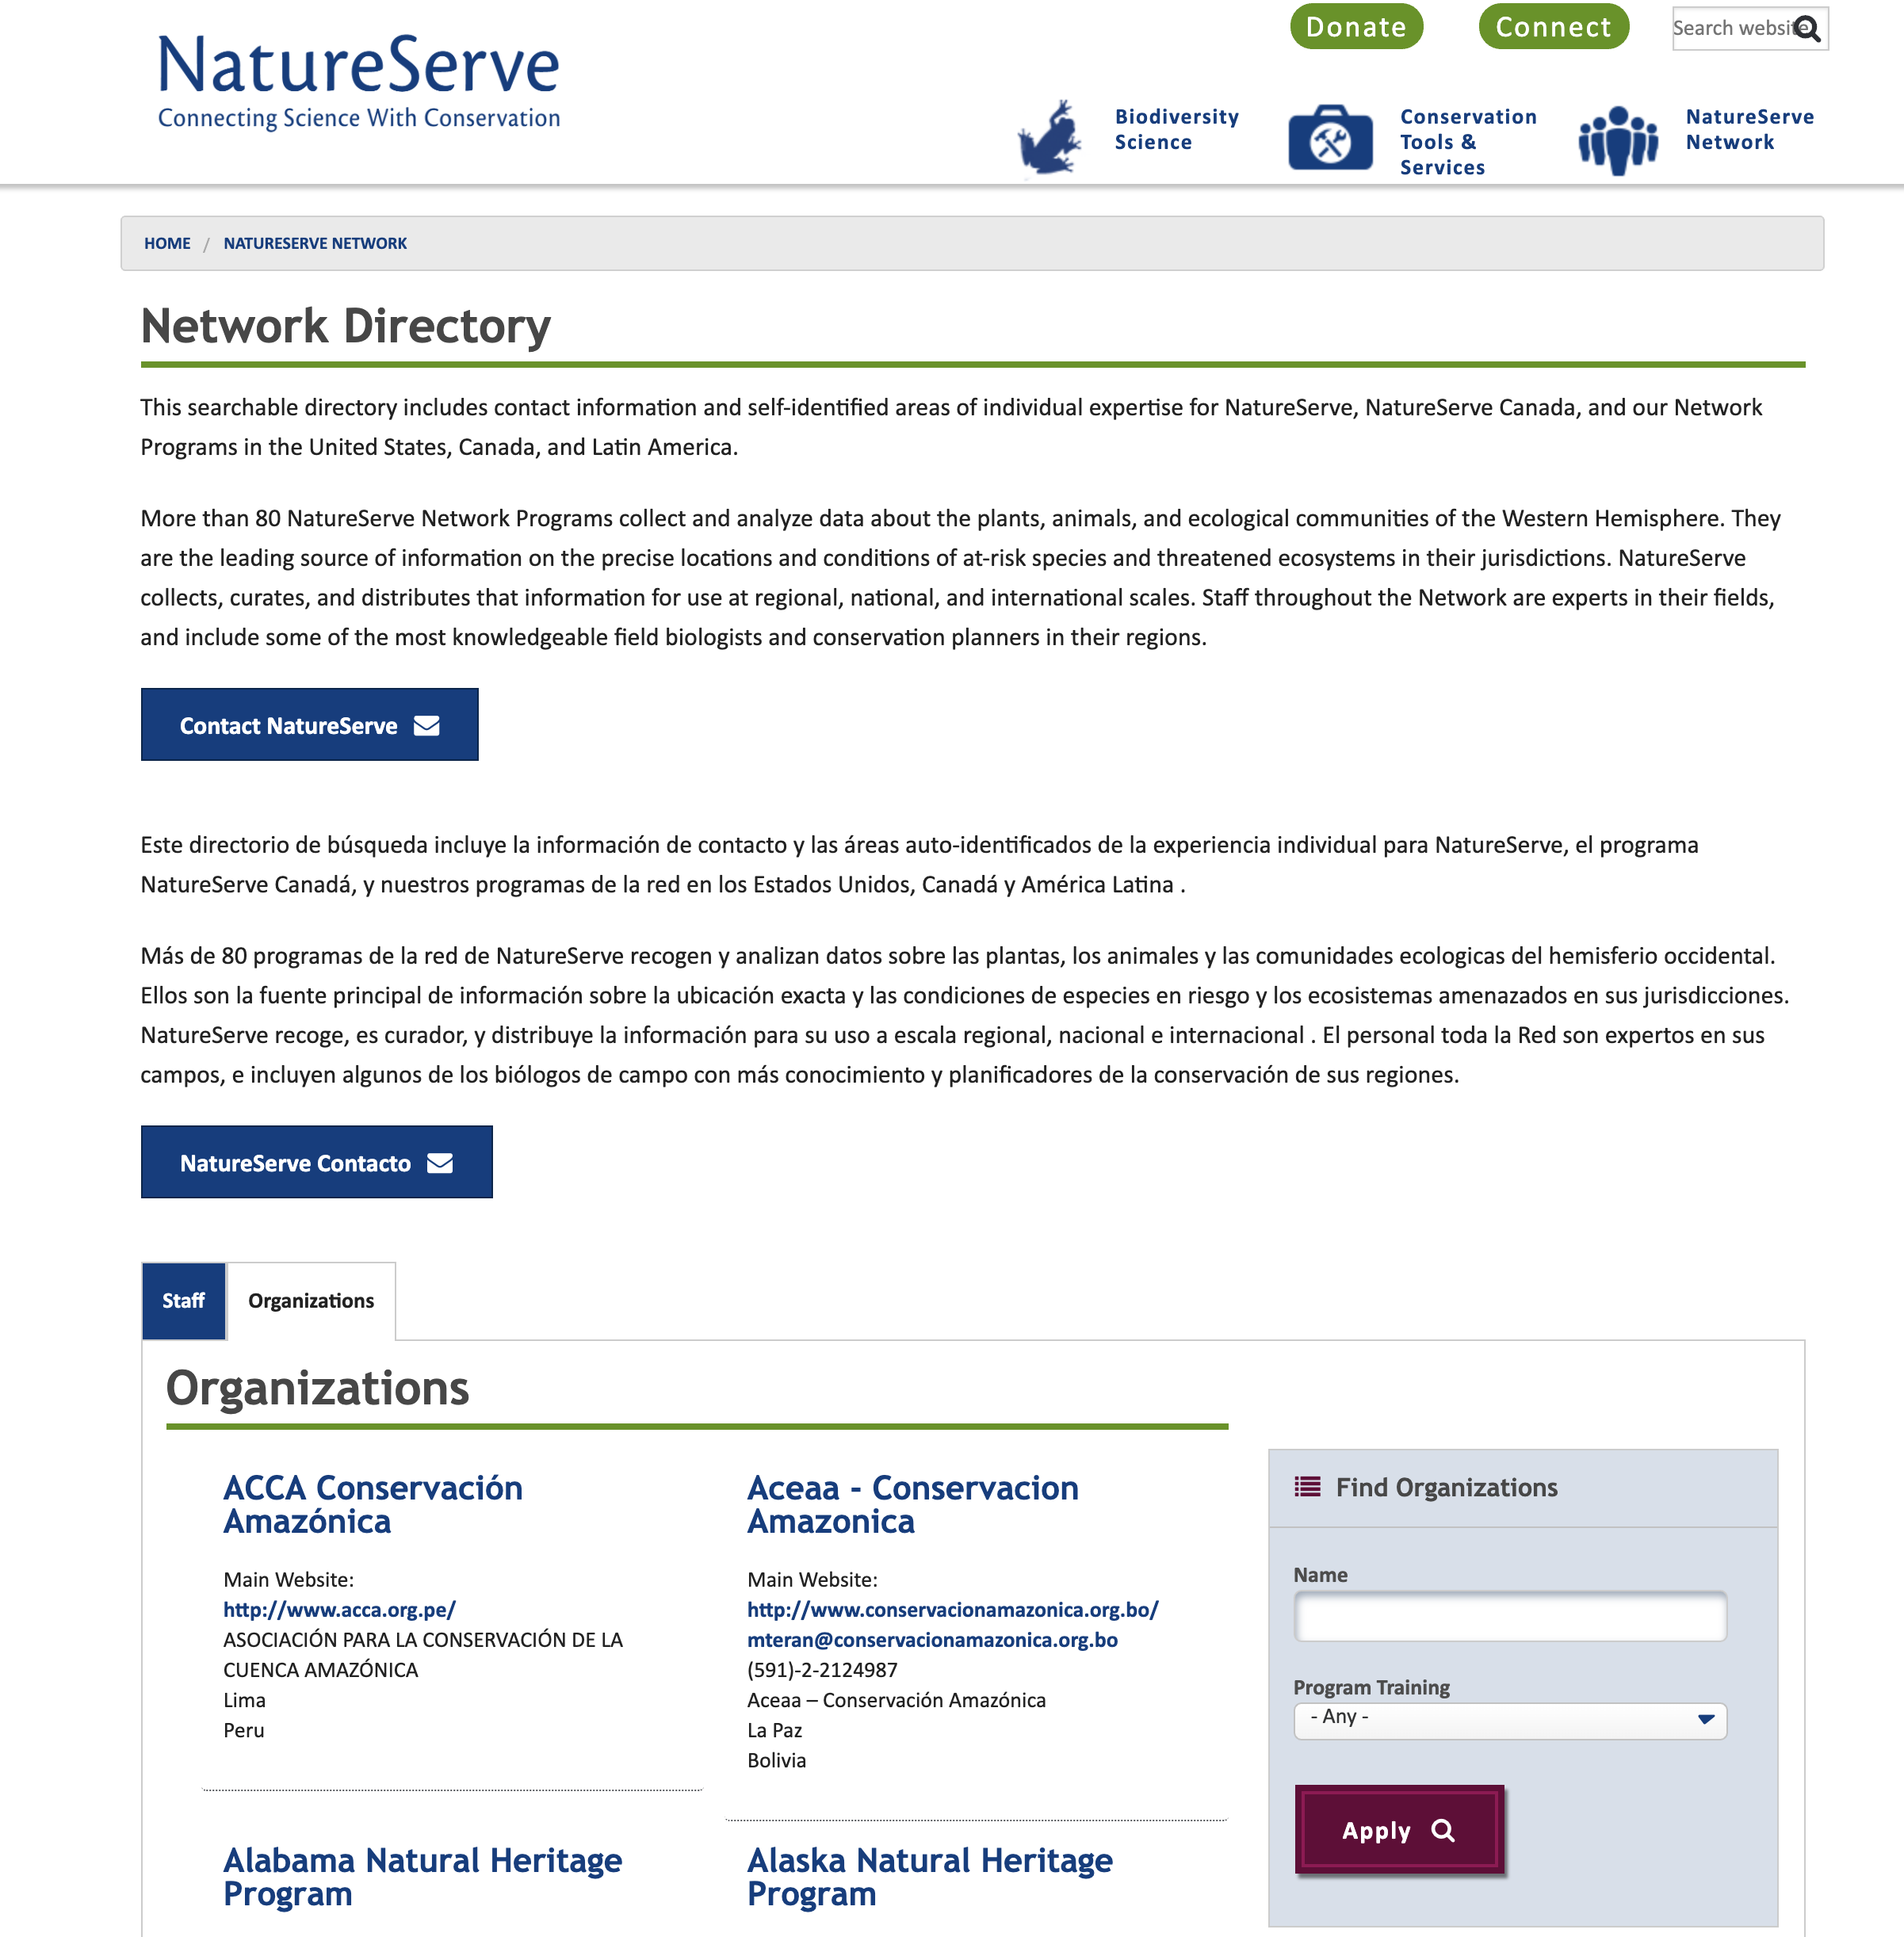 Data from each of the Natural Heritage Programs is consolidated at NatureServe. To connect with your state's program, or any other program across the Americas, you can search the directory at NatureServe.org.